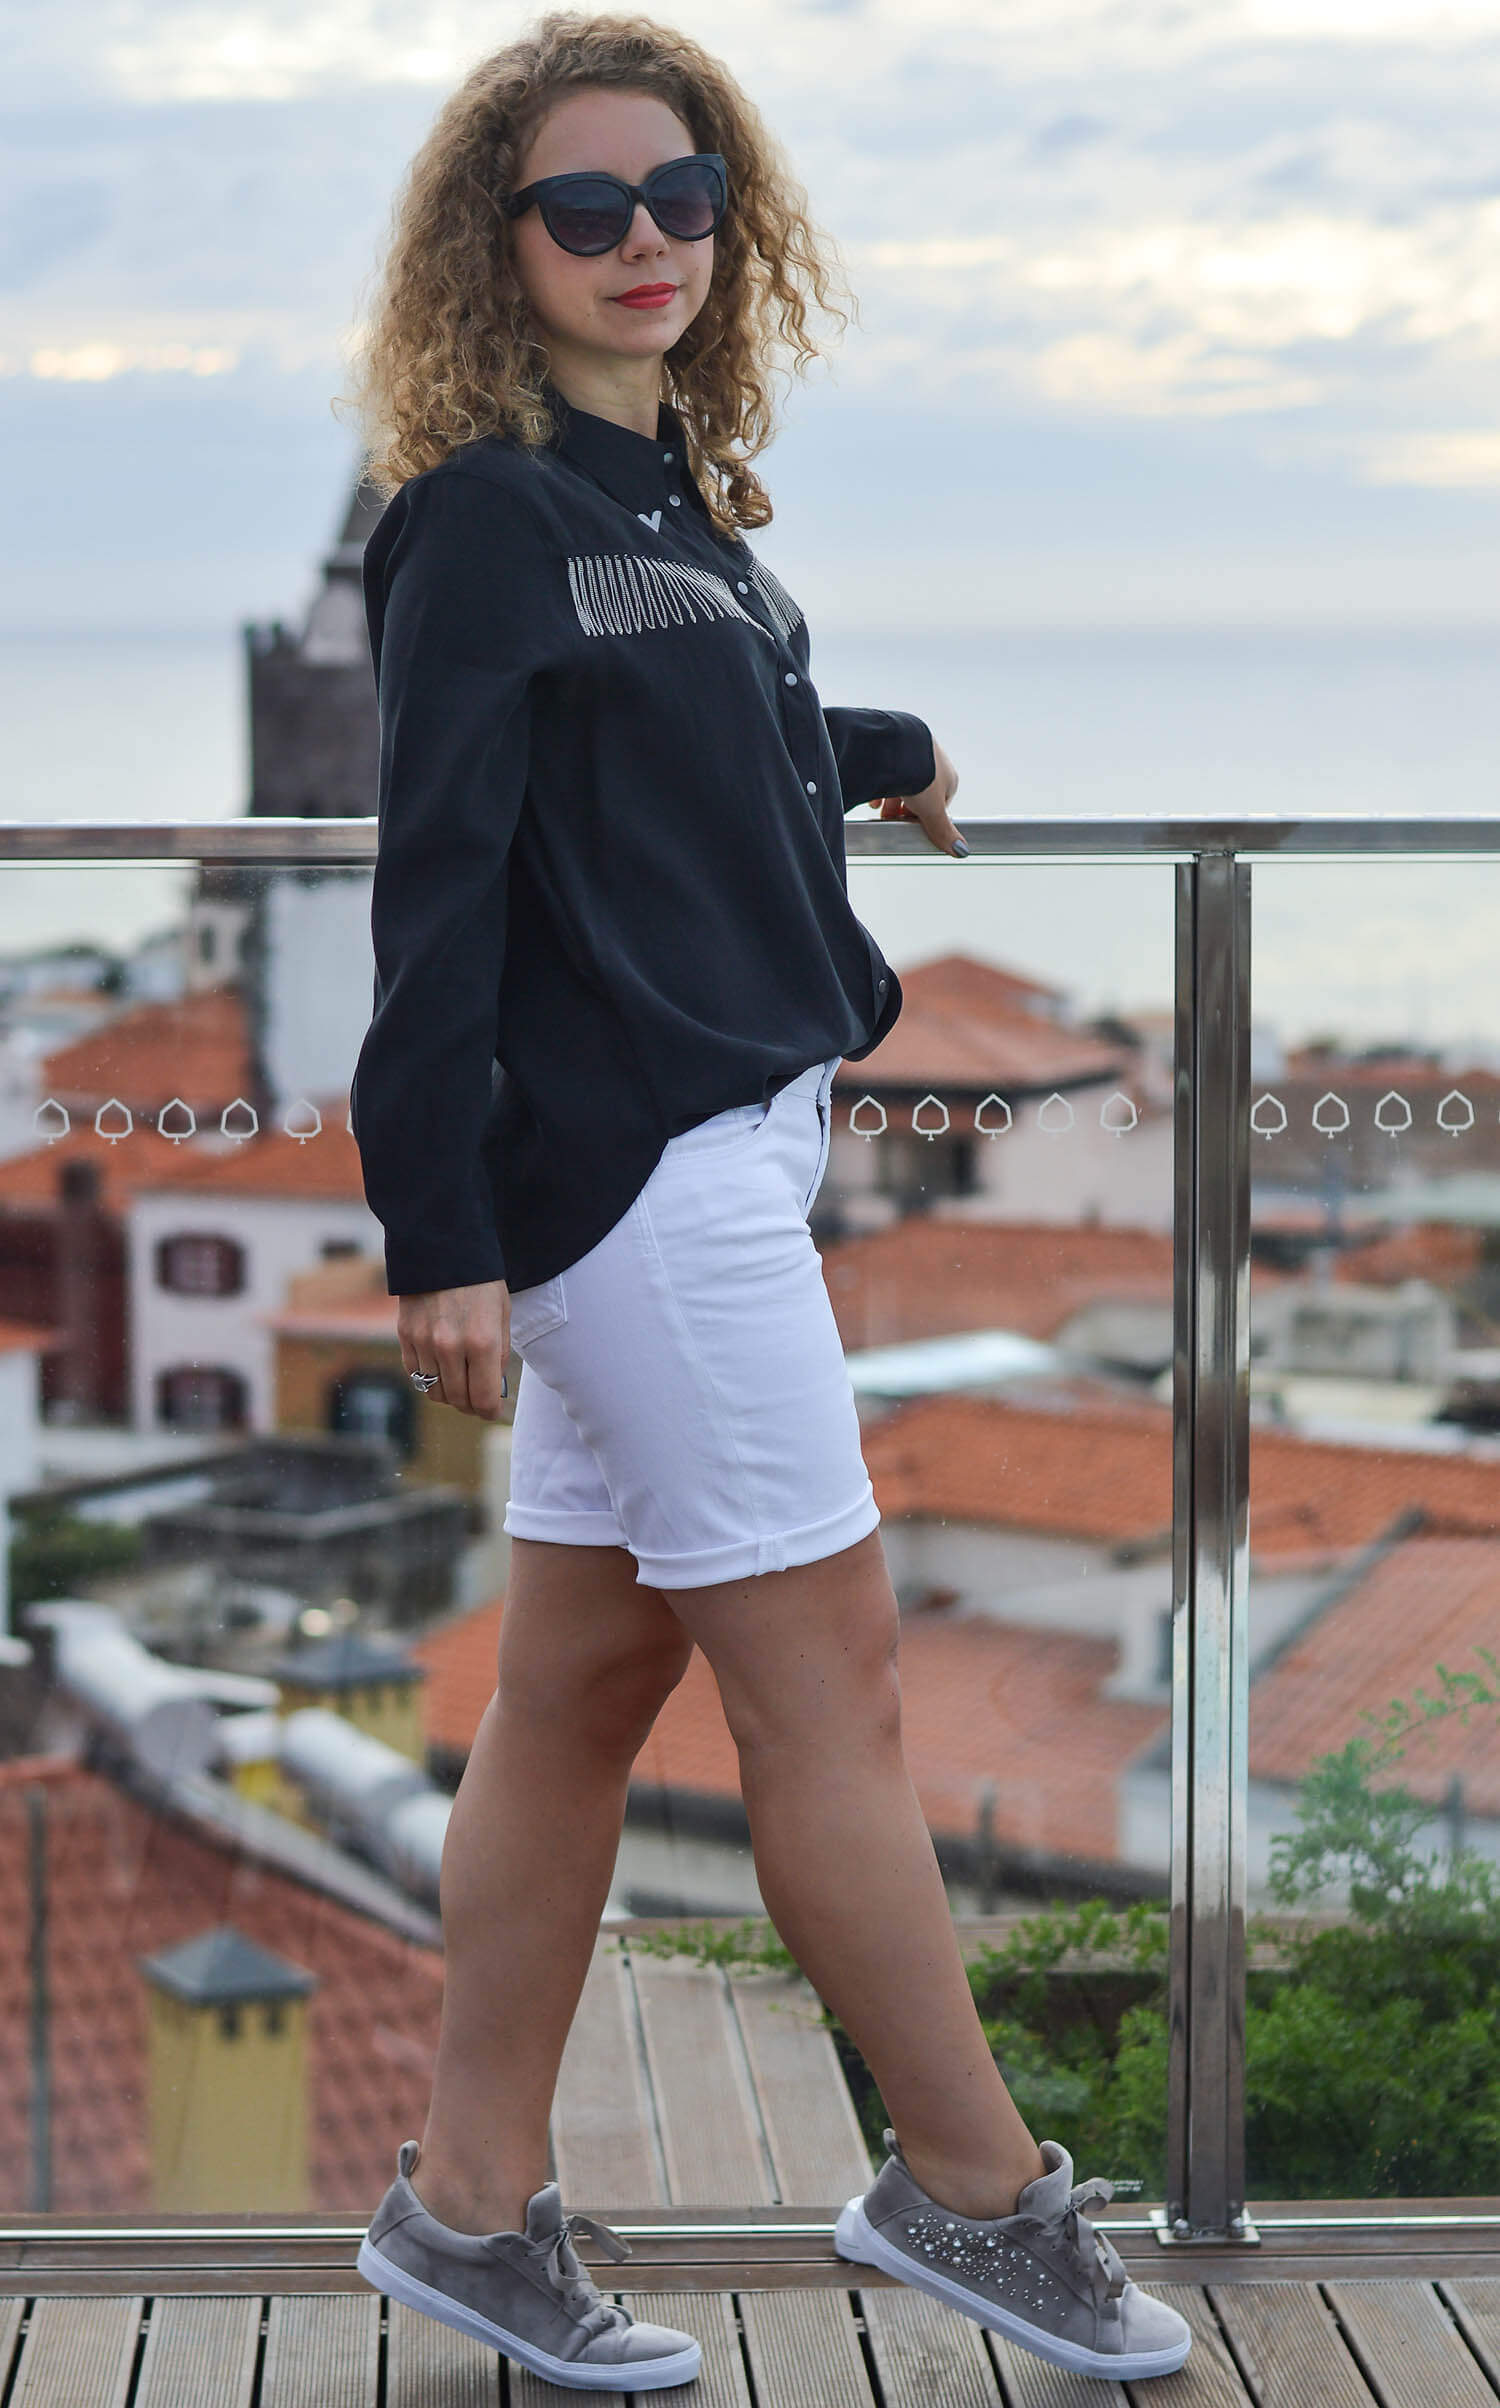 Kationette-fashionblogger-nrw-Outfit-White-Bermudas-Zara-Western-Blouse-and-Velvet-Sneakers-in-Funchal-Madeira